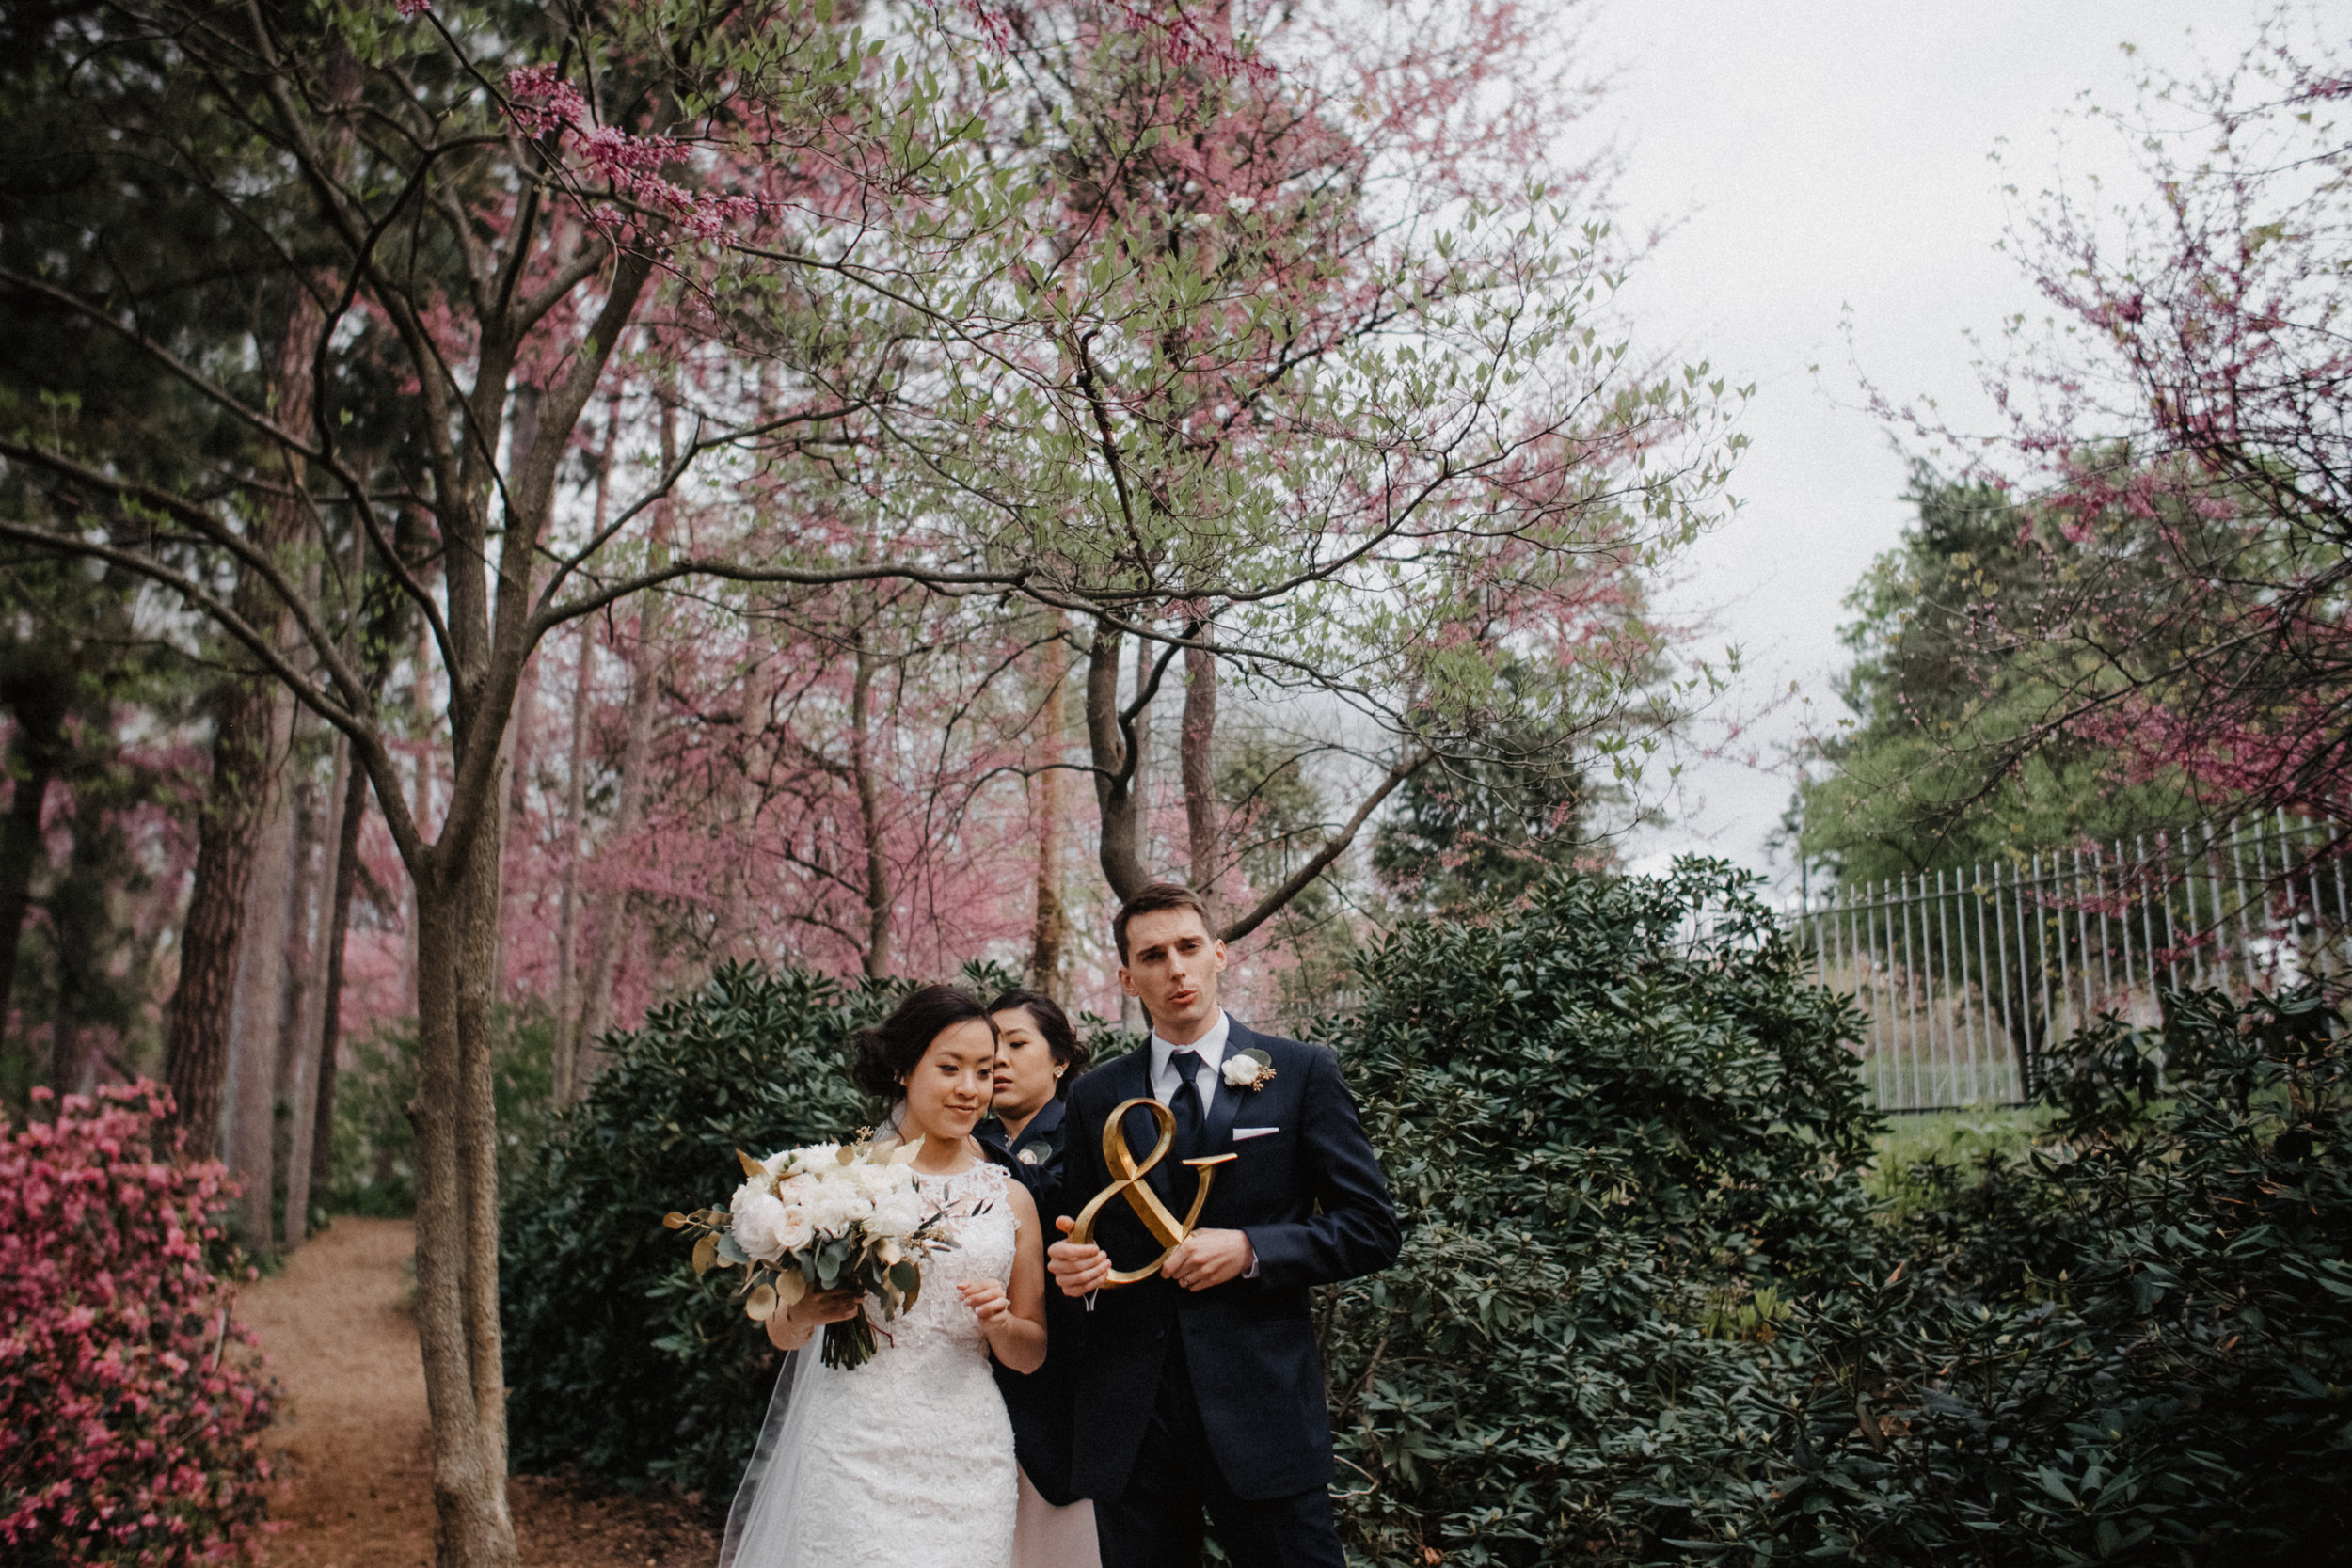 ShadowShinePictures-VeronicaToddKorthals-Ann-Arbor-Wedding-Photography-28.jpg